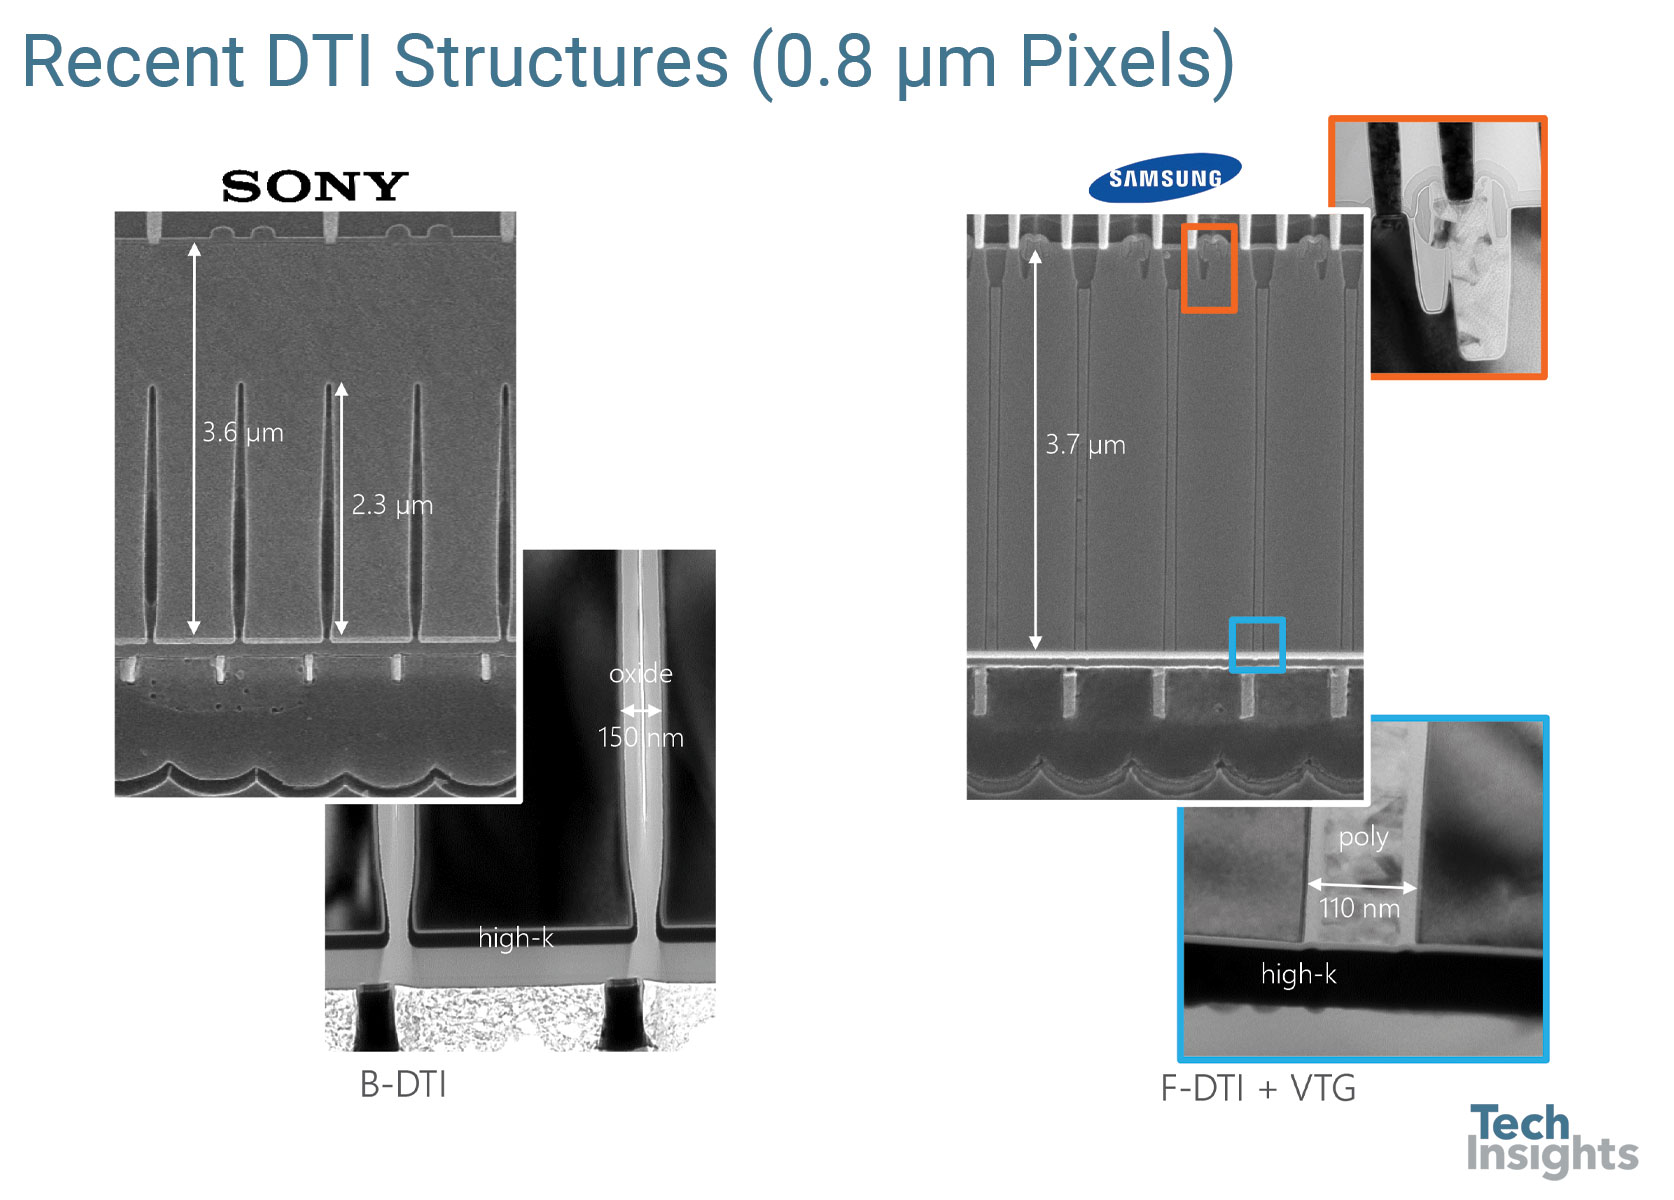 DTI in 0.8 µm Generation Pixels